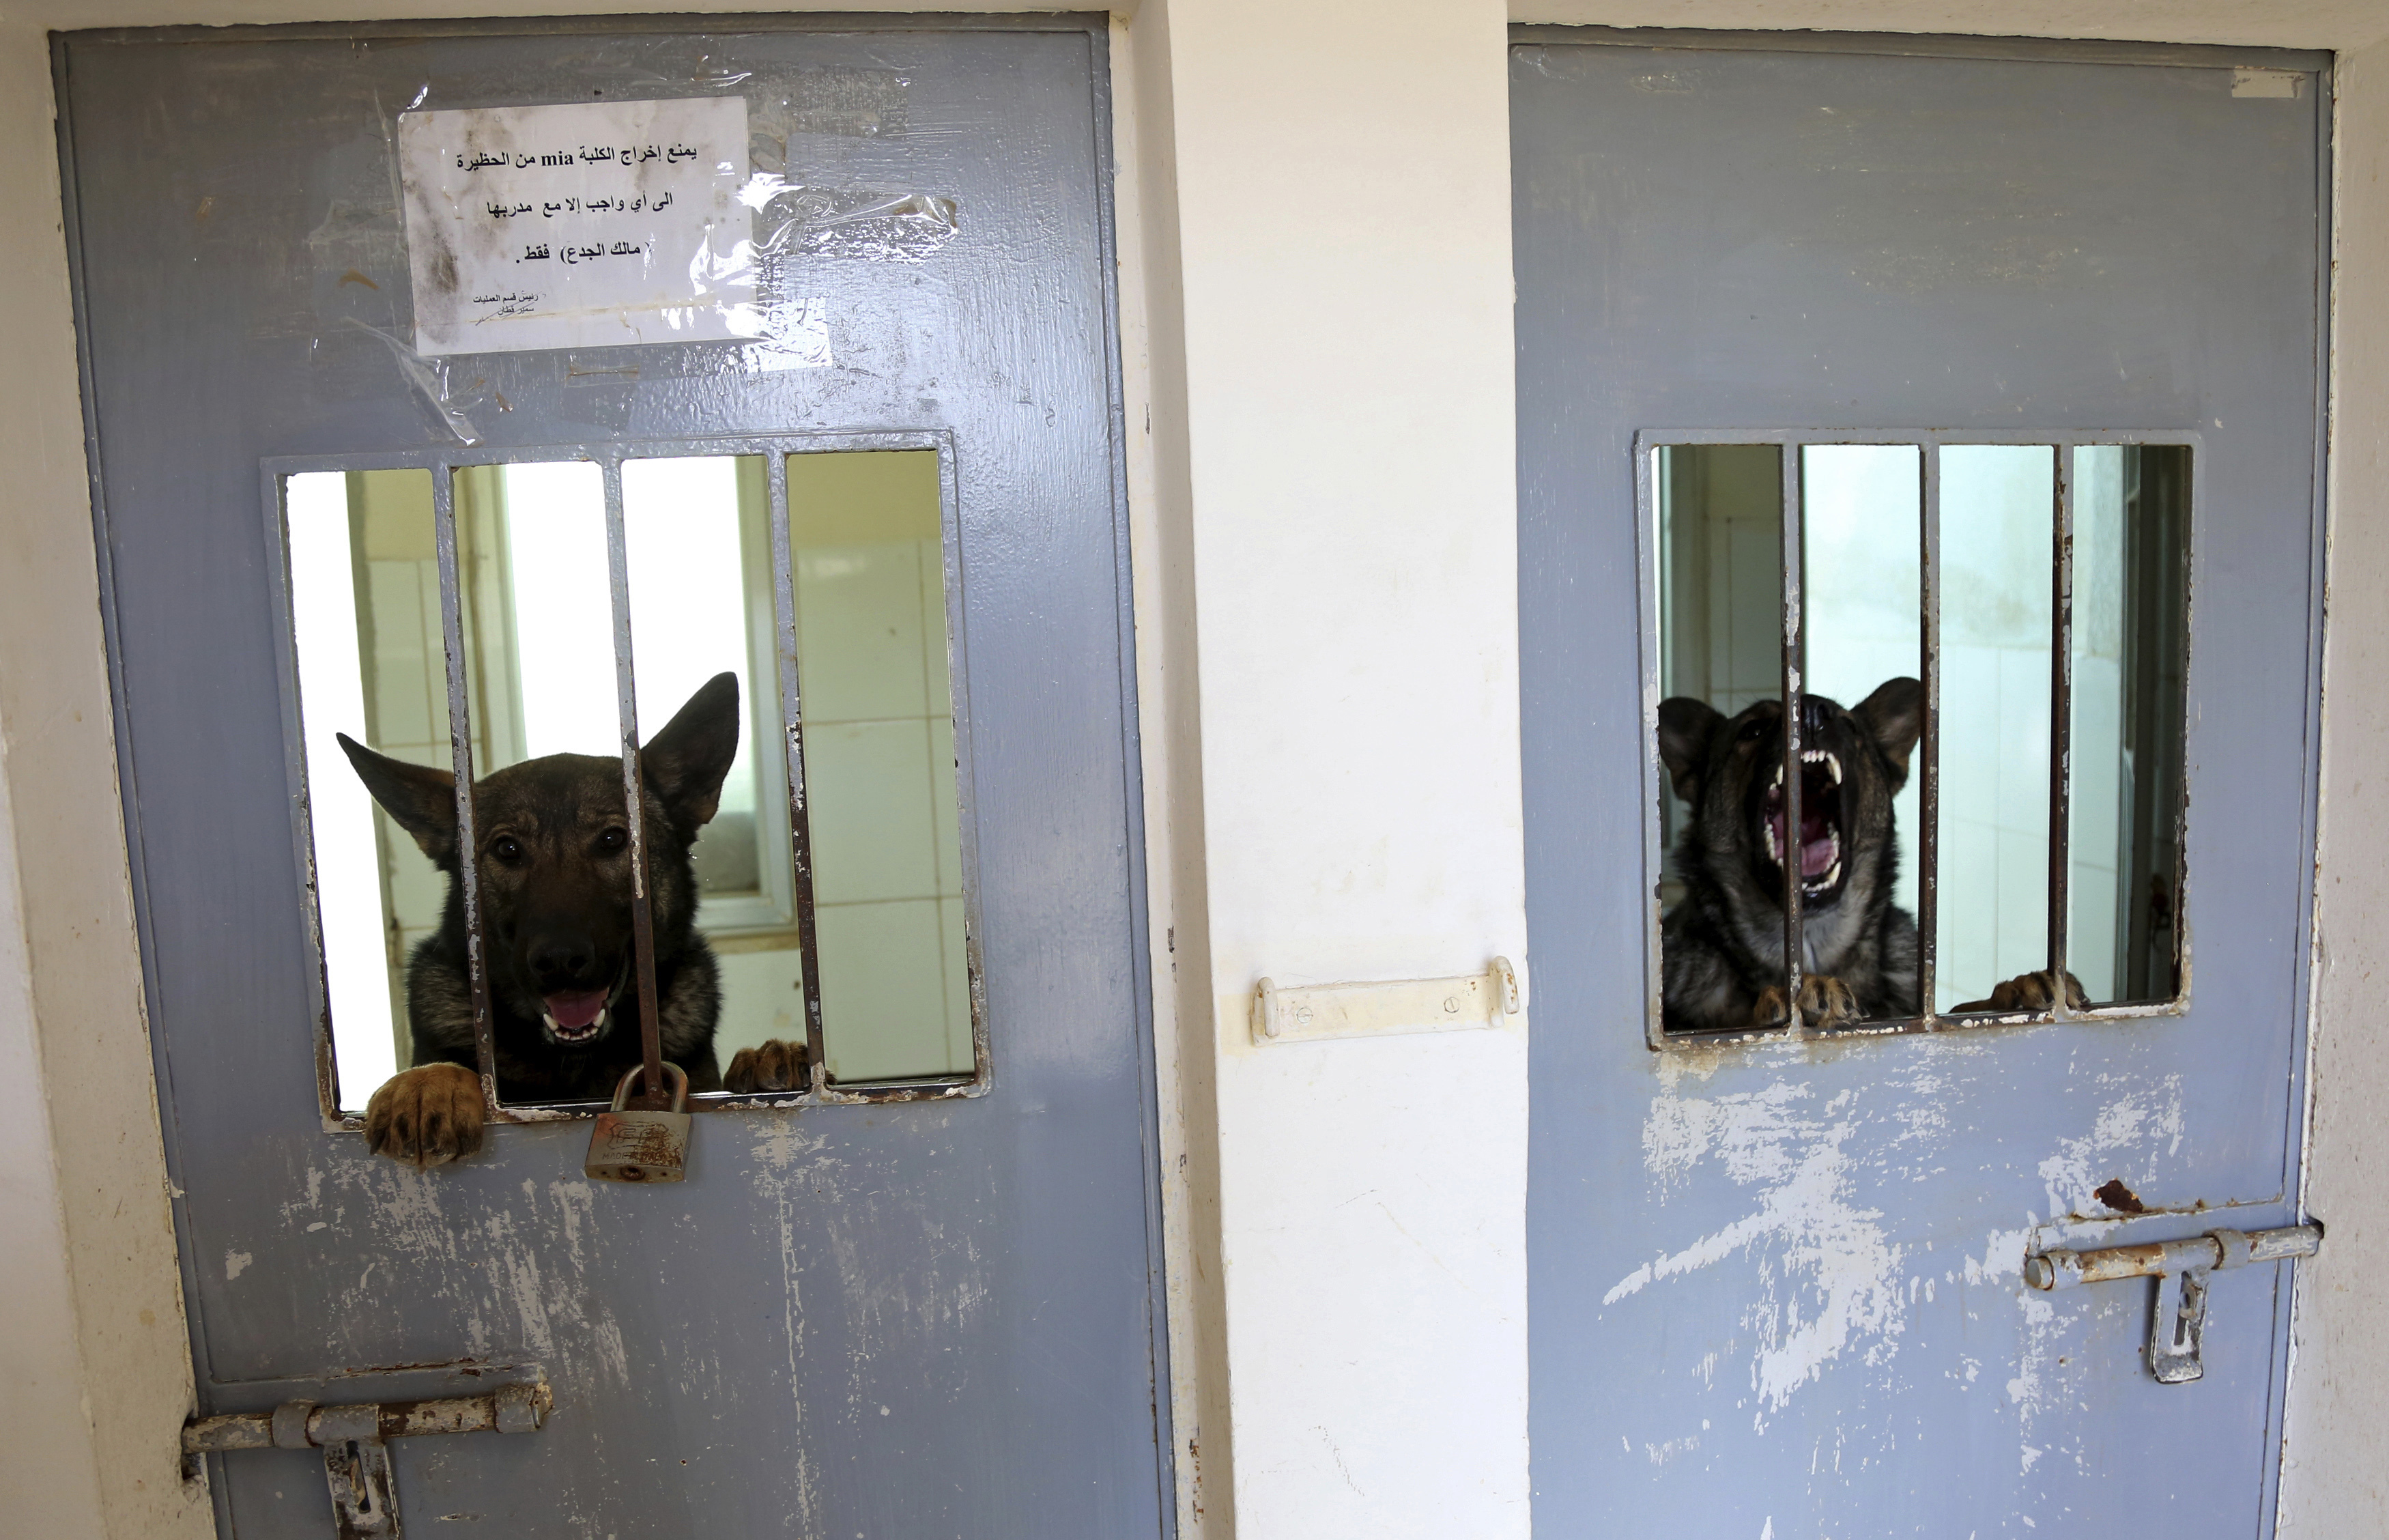 Two dogs from the K-9 unit of Jordan's police look through the bars of their kennels March 19, 2018. The U.S. State Department's Anti-Terrorism Assistance Program has trained 39 dog-handler teams and embedded two mentors with the program in Jordan. (Raad Adayleh/AP)